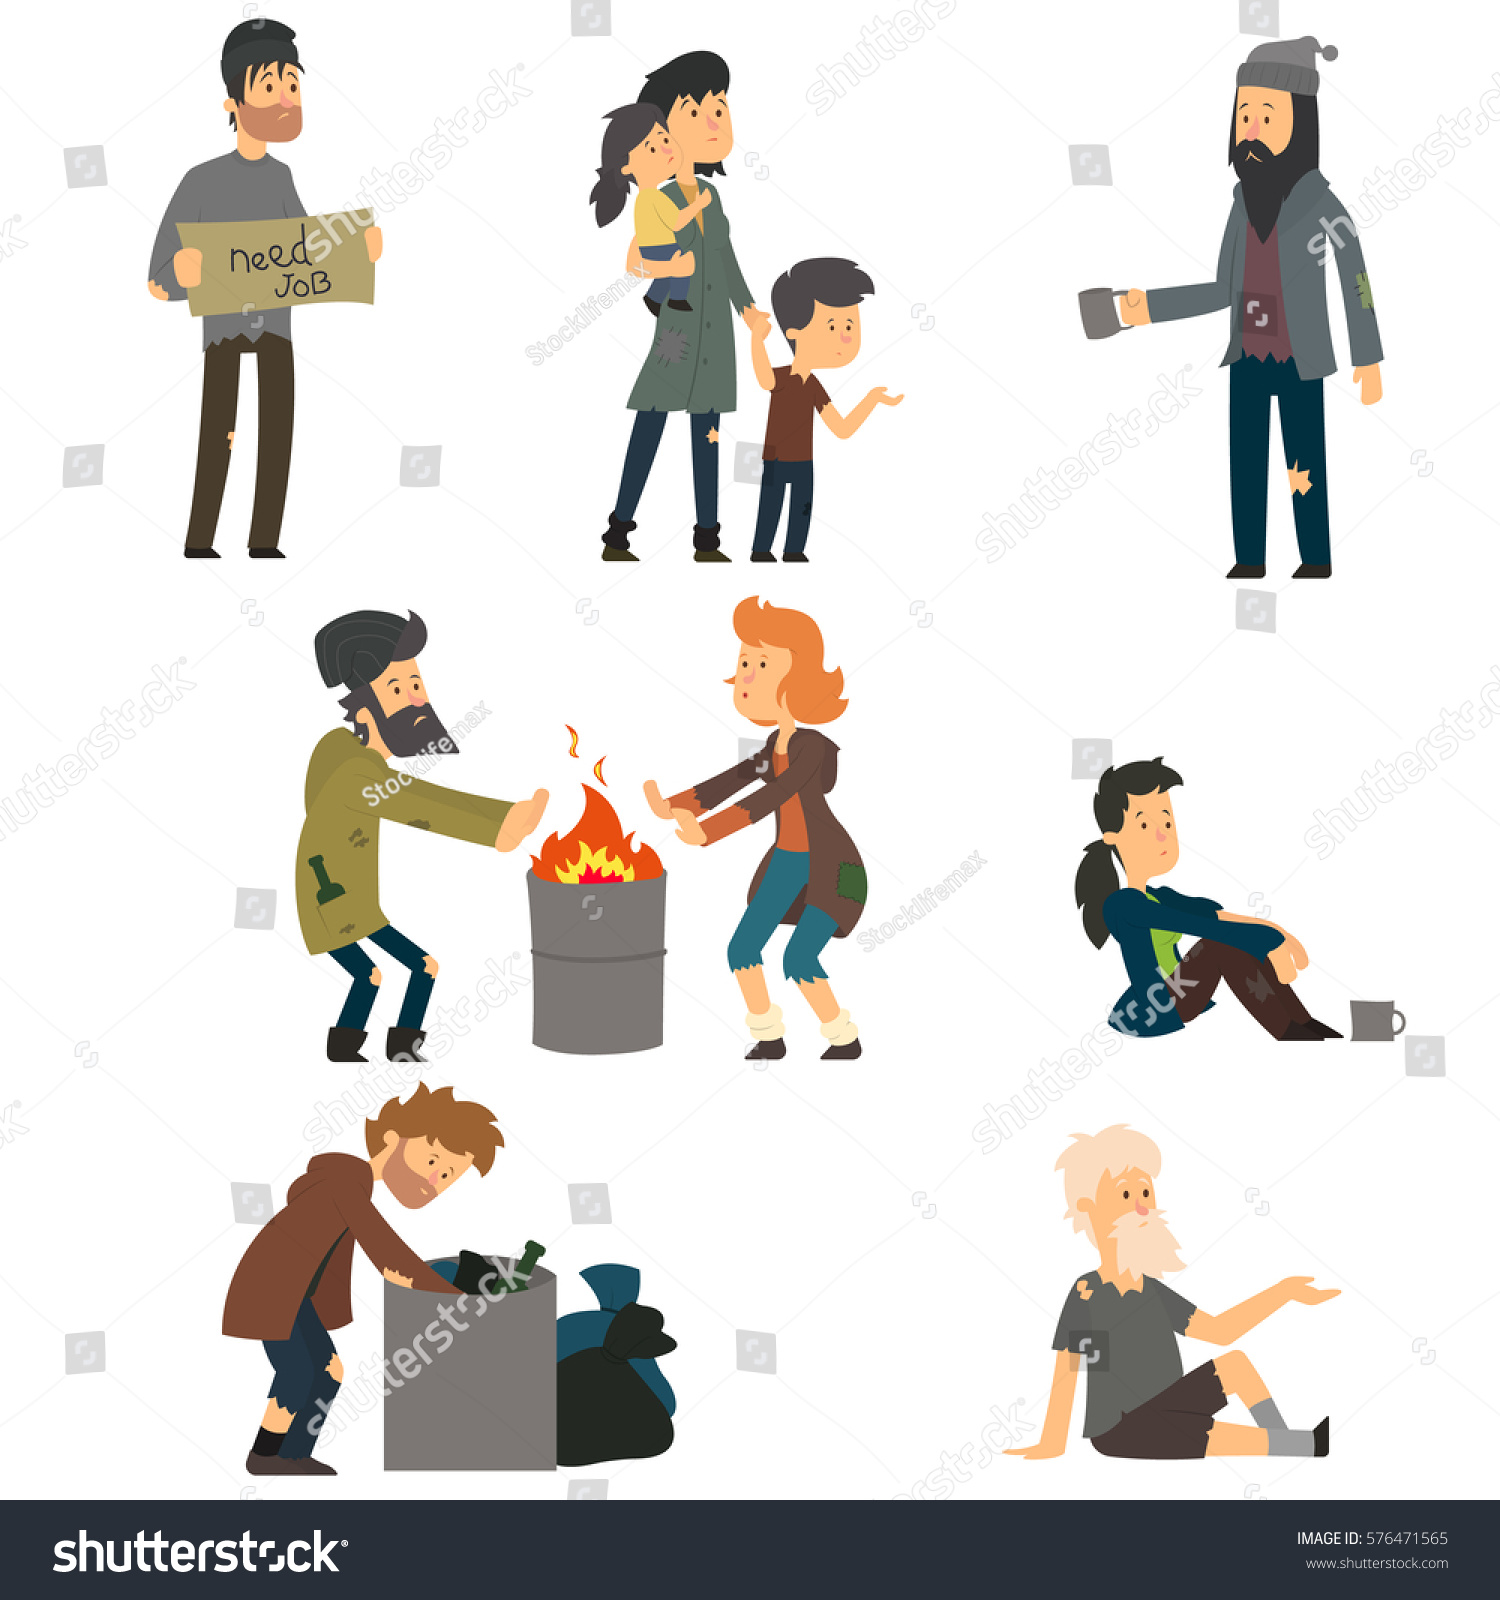 symbolic interactionism homelessness Symbolic interactionism and conflict theory no description by on 12 december 2013 tweet comments (0) please log  homeless man interacting with a wealthy student.